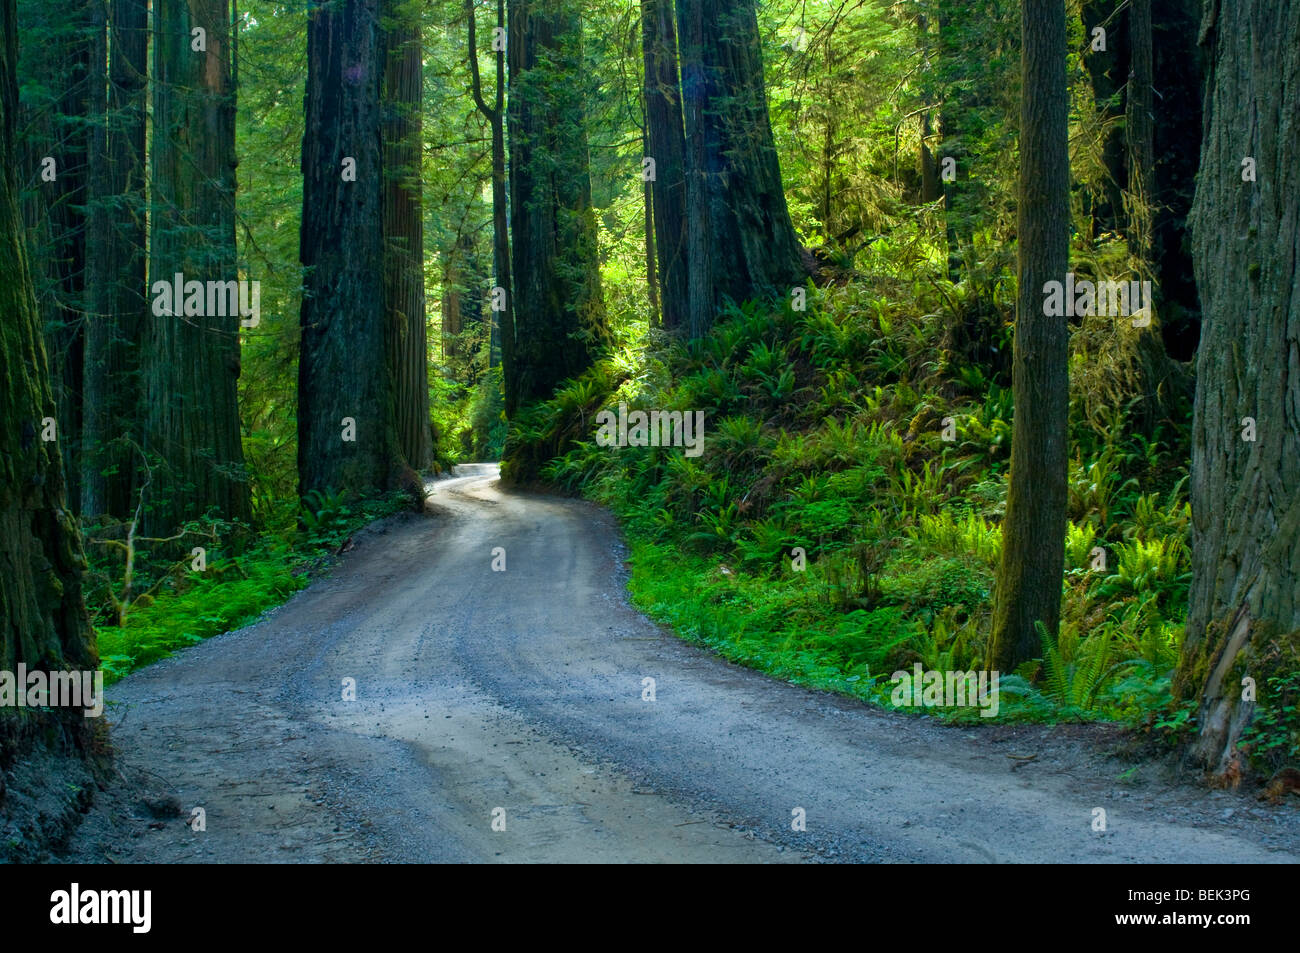 Sunlight through redwood trees in forest, Howland Hill road, Jedediah Smith Redwoods State Park, California - Stock Image